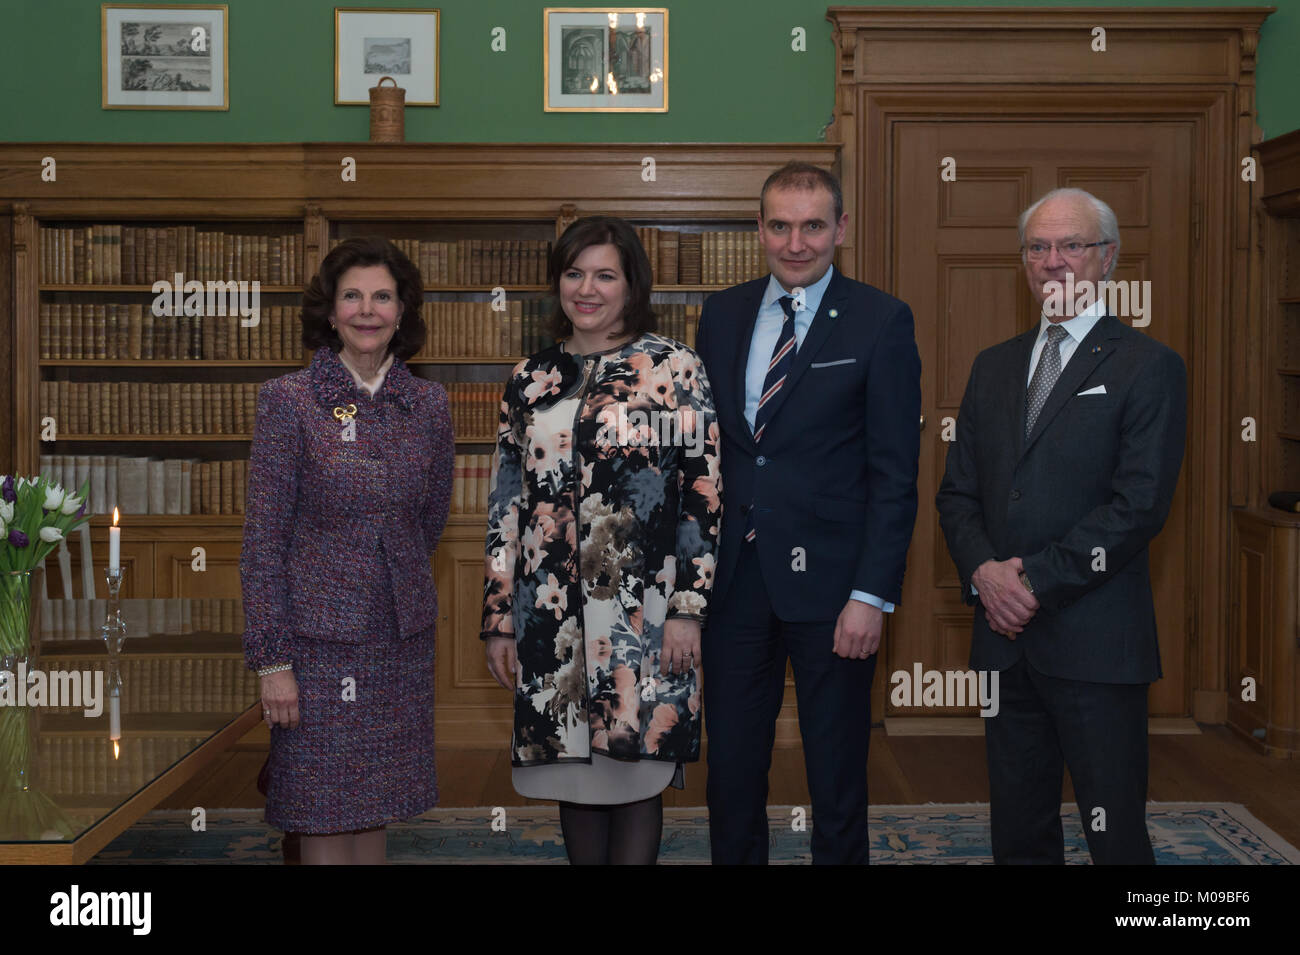 Stockholm, Sweden, 19th January, 2018.  From 17 to 19 January, Iceland's President Guðni Thorlacius Jóhannesson, visiting Sweden at the invitation of The King. President Jóhannesson visiting Sweden with his wife, Eliza Jean Reid. Farewell at Uppsala Castle. The royal couple wished the presidential couple farewell at the departure ceremony, here at the library at Uppsala Castle. Stock Photo